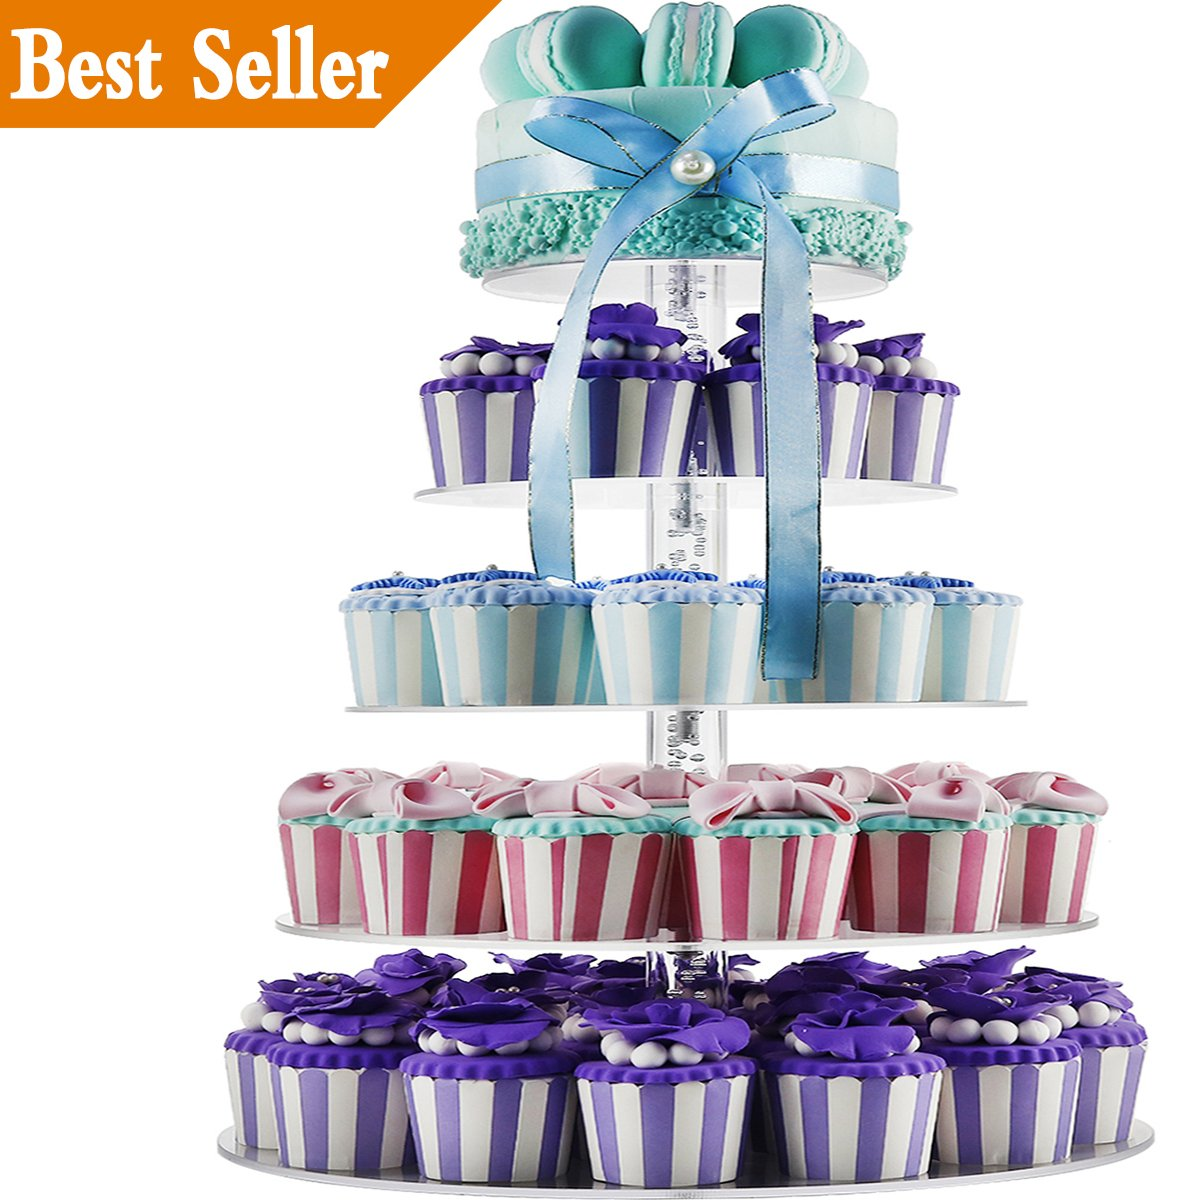 5 Tiers Round Acrylic Cupcakes Stands Holders, Clear Wedding Cakes Stand, Large Pastry Cupcake Tower Stand for 50 60 cupcakes, Cupcake Tree, Cupcake Display DYCacrlic(Unique Bubble Party Decorations)